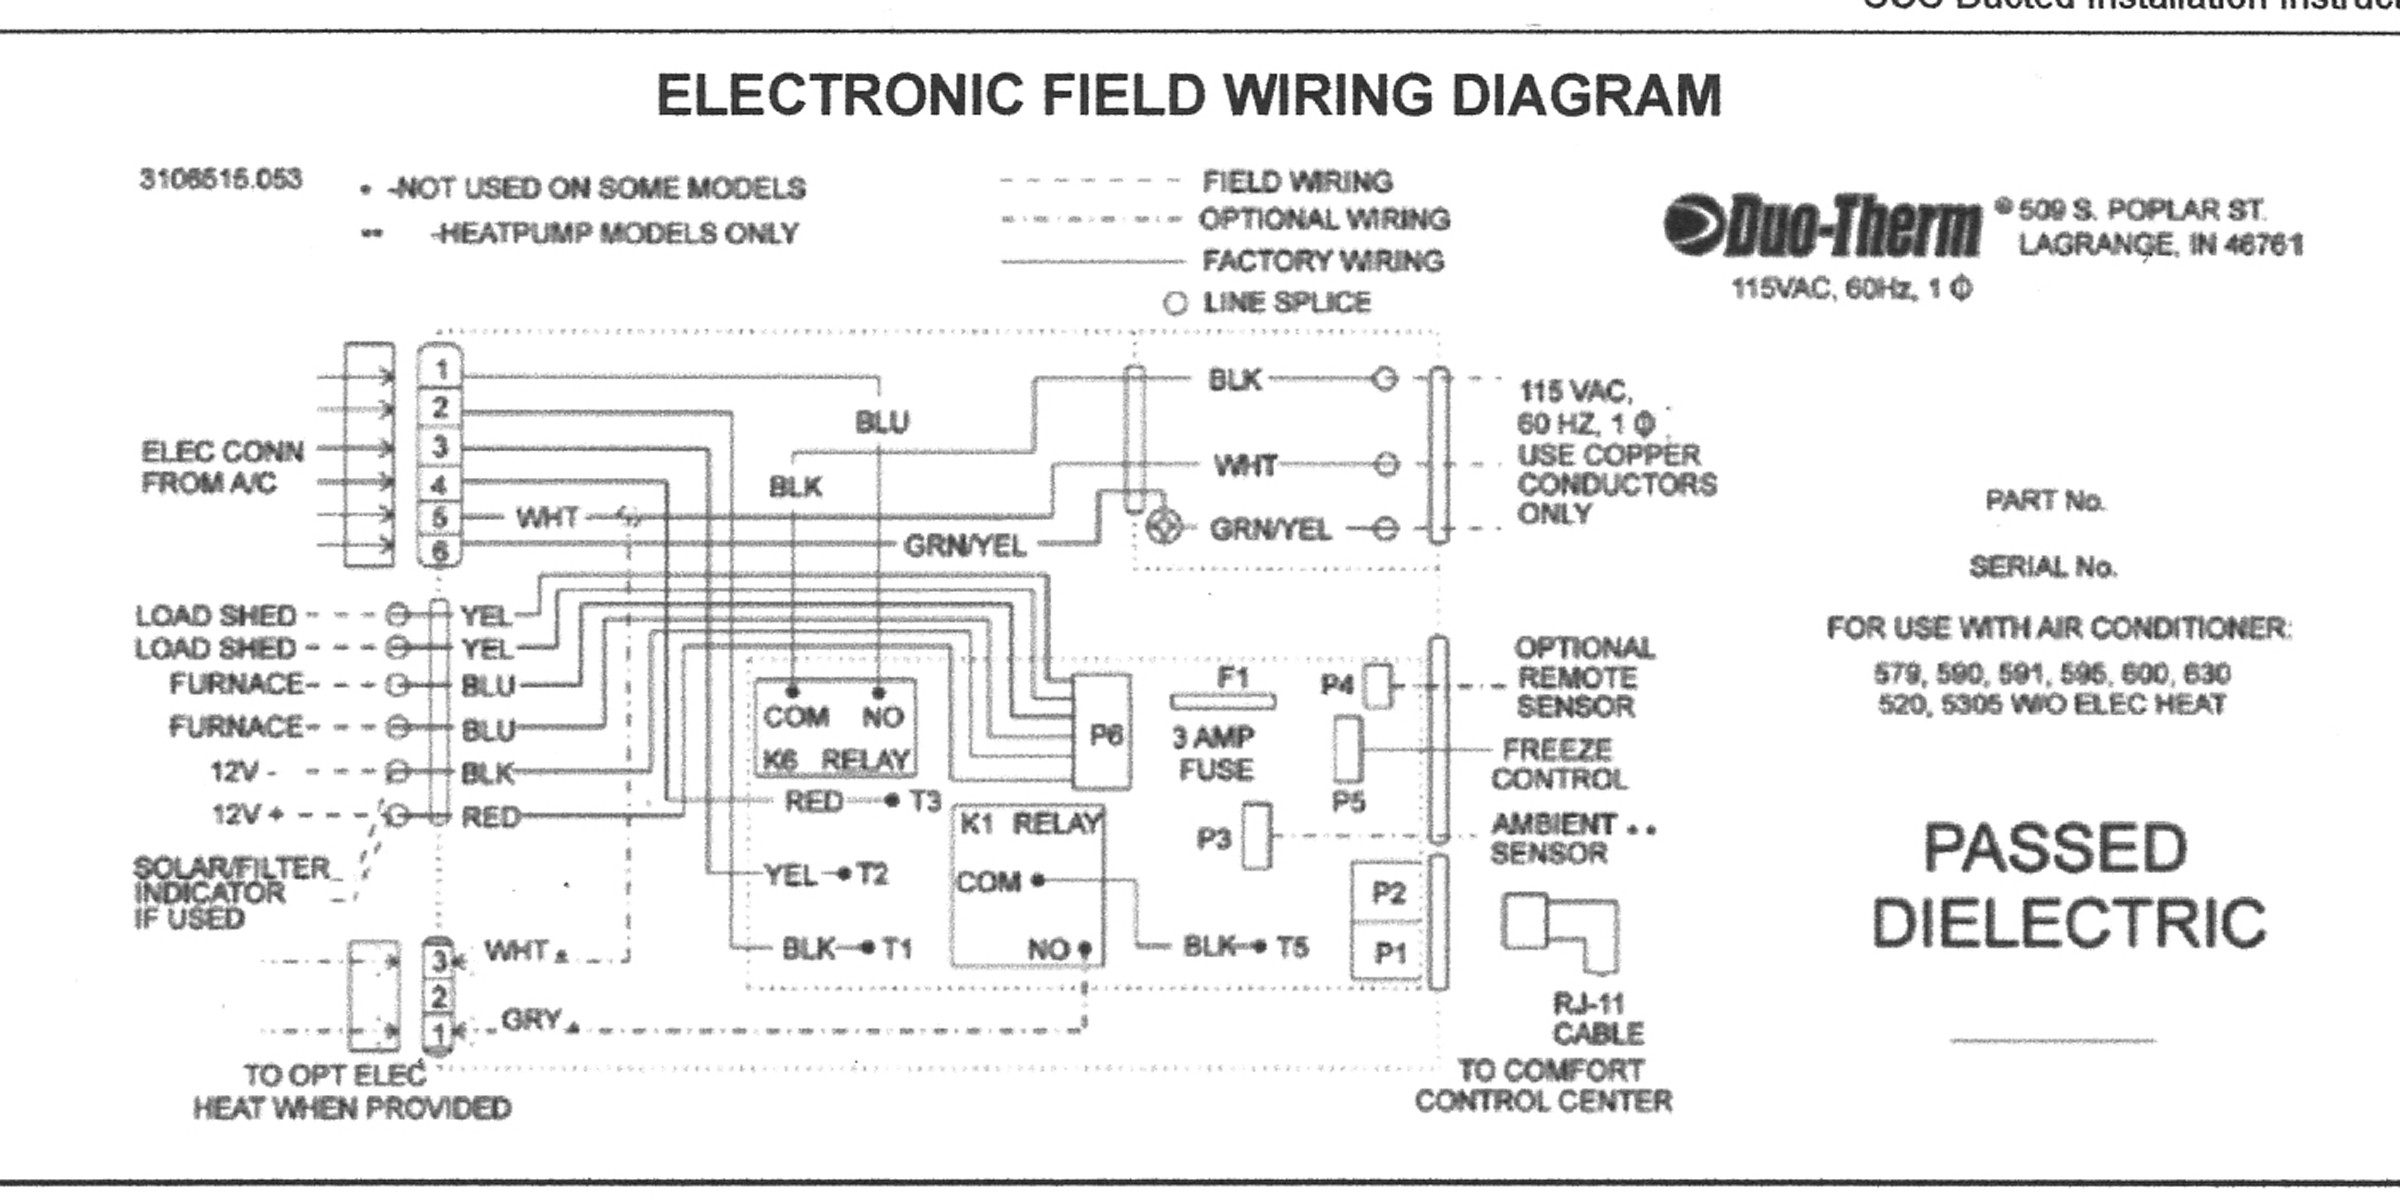 Thermostat Wiring Diagram Air Conditioner Reference Thermostat - Air Conditioner Thermostat Wiring Diagram